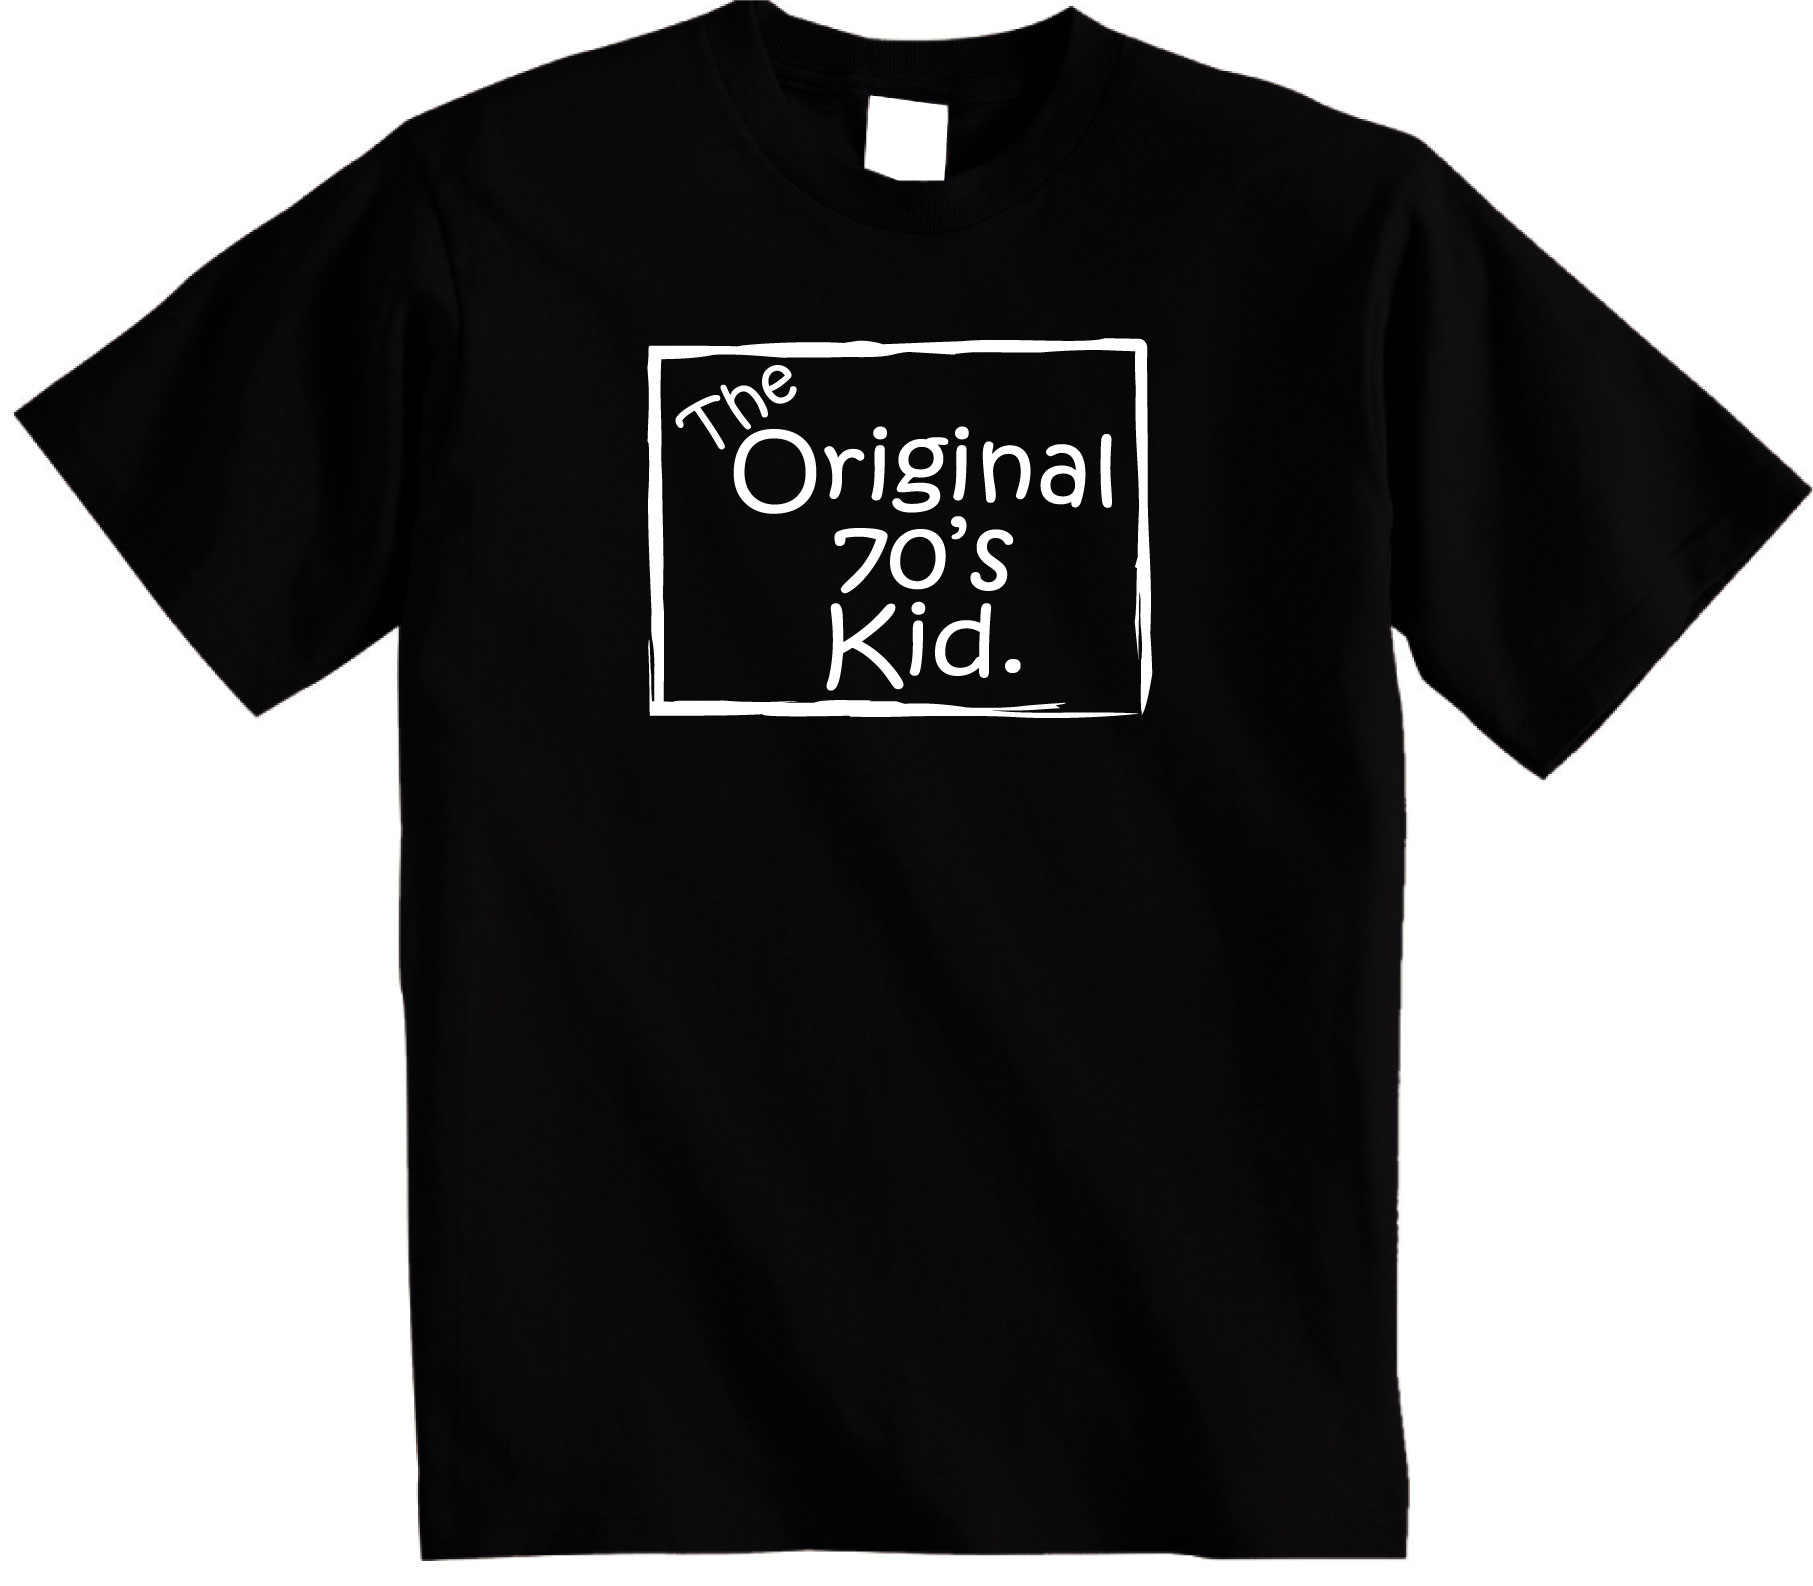 The Original 70's Kid t shirt Perfect Gift or Persent